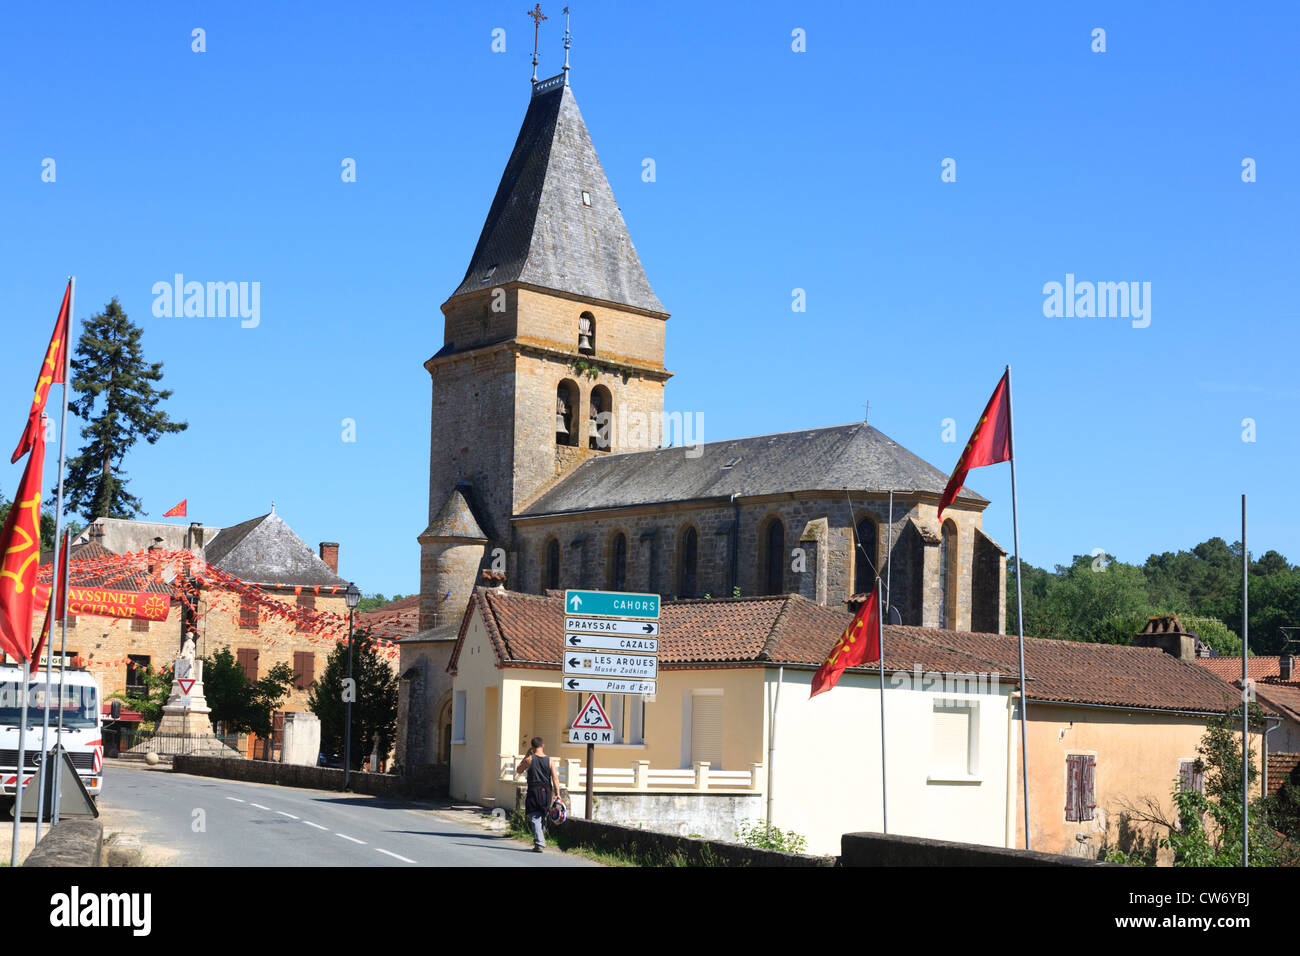 The church in the centre of the Village of Frayssinet-Le-Gelat in the Lot region of France Stock Photo